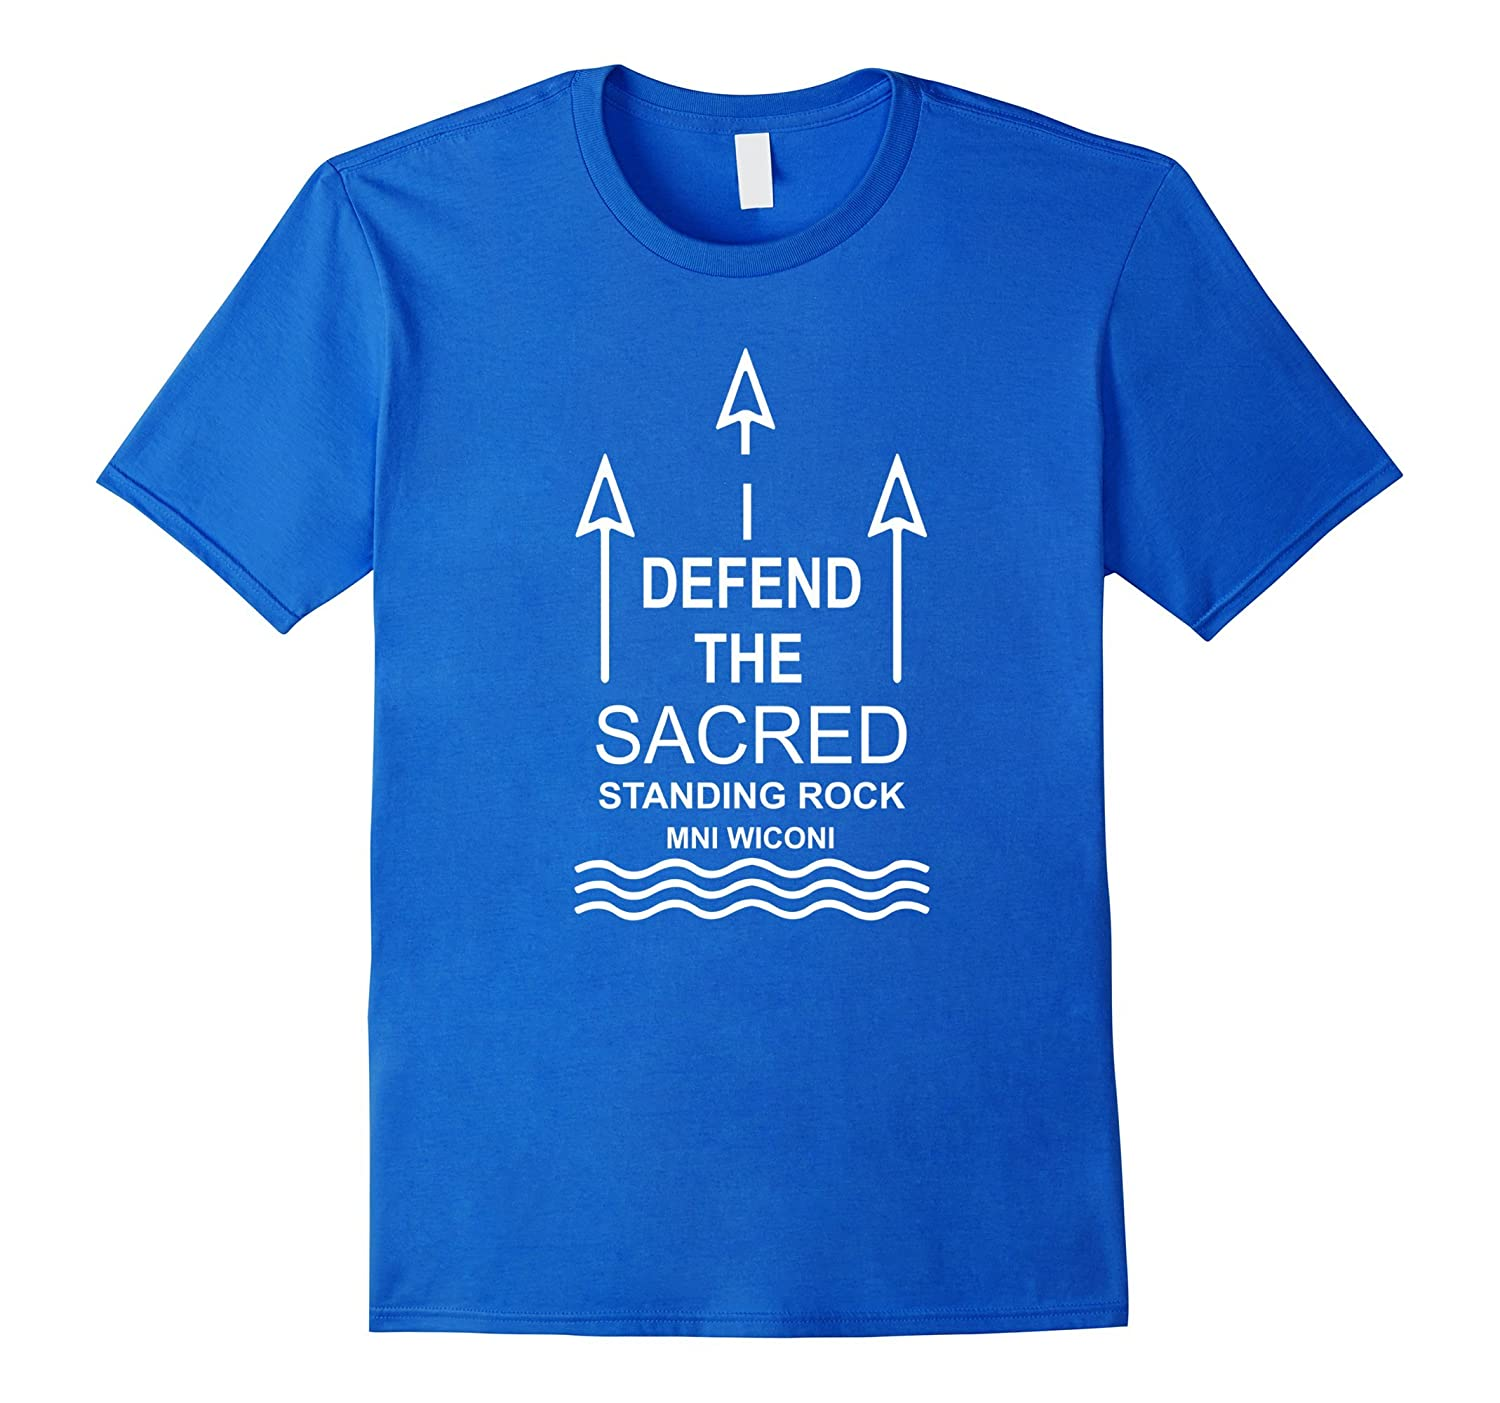 Defend The Sacred Shirt - Up To Us Shirt Mni Wiconi-CL